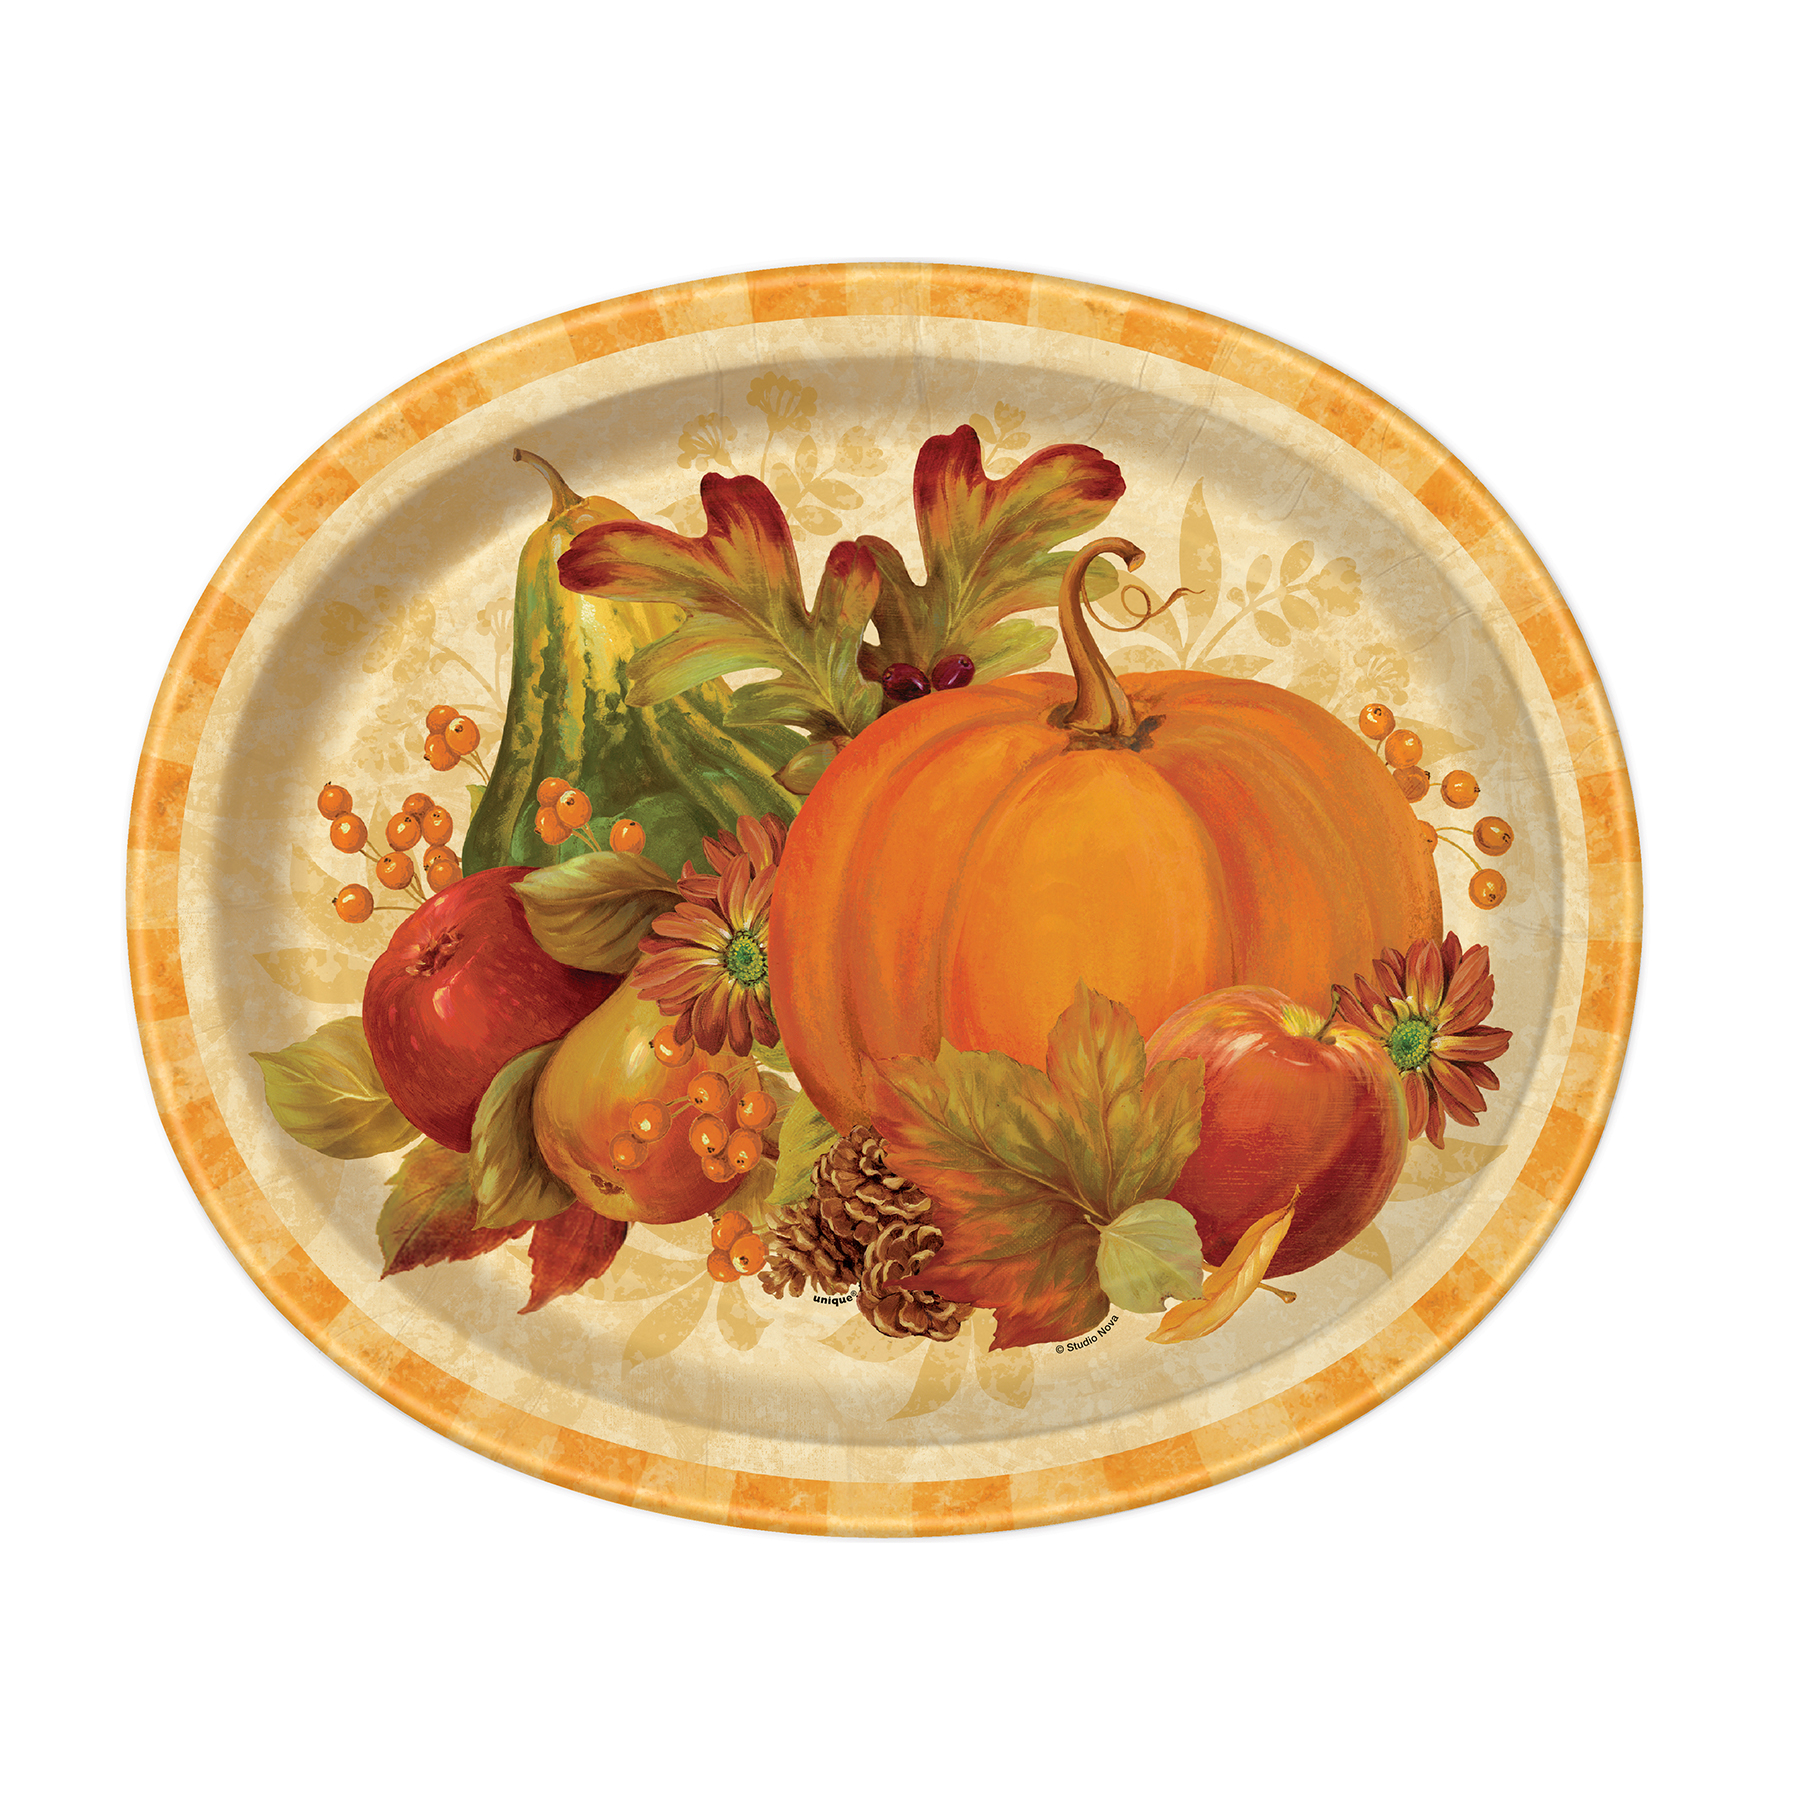 Oval Pumpkin Harvest Fall Dinner Plates 8ct  sc 1 st  Michaels Stores & Pumpkin Harvest Fall Oval Paper Plates | Fall Party Supplies